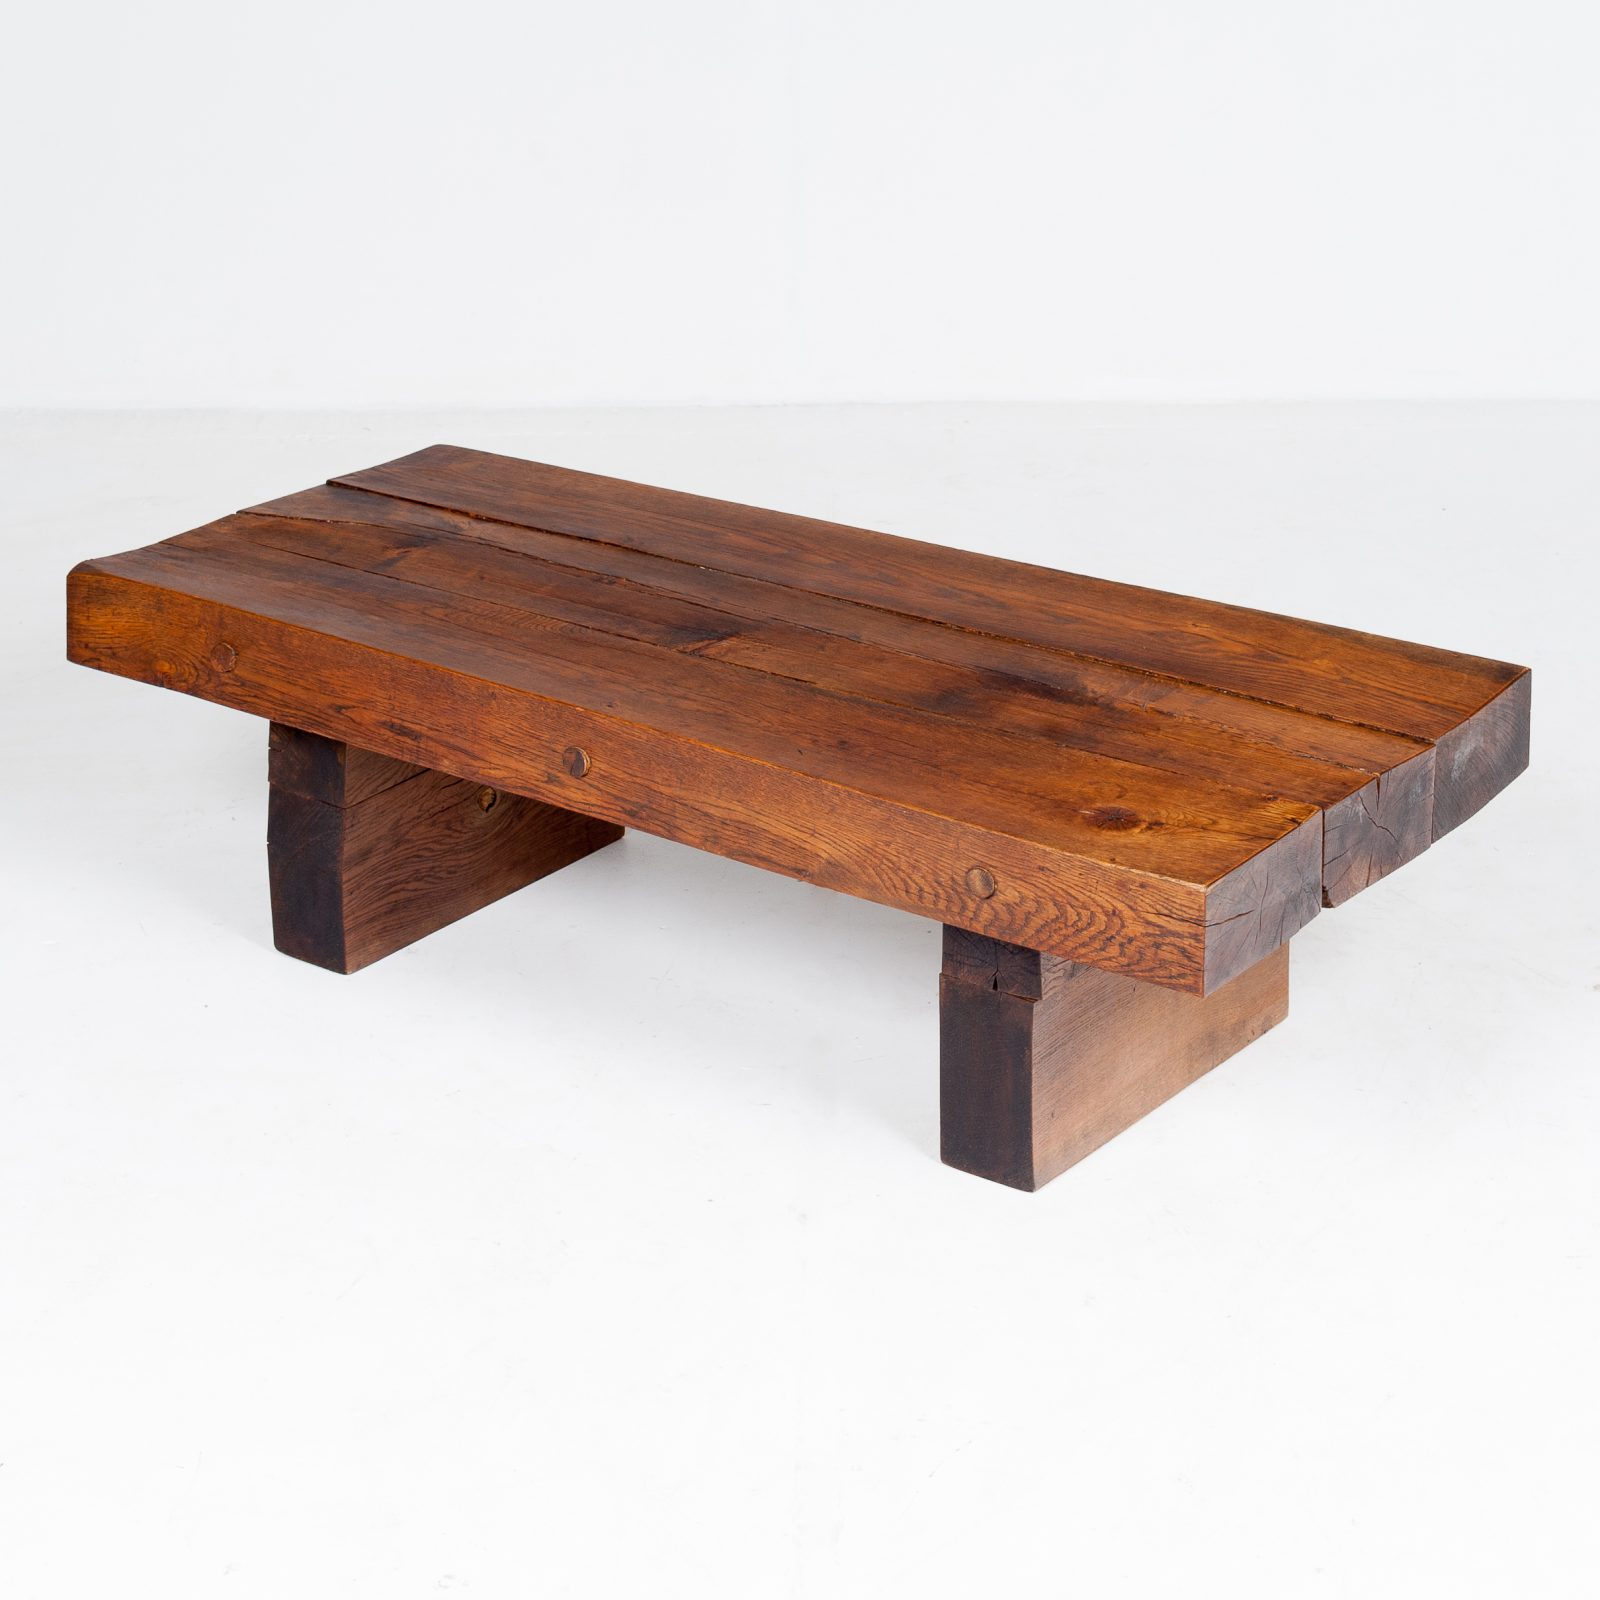 Brutalist Style Coffee Table In Timber, 1960s, The Netherlands 799